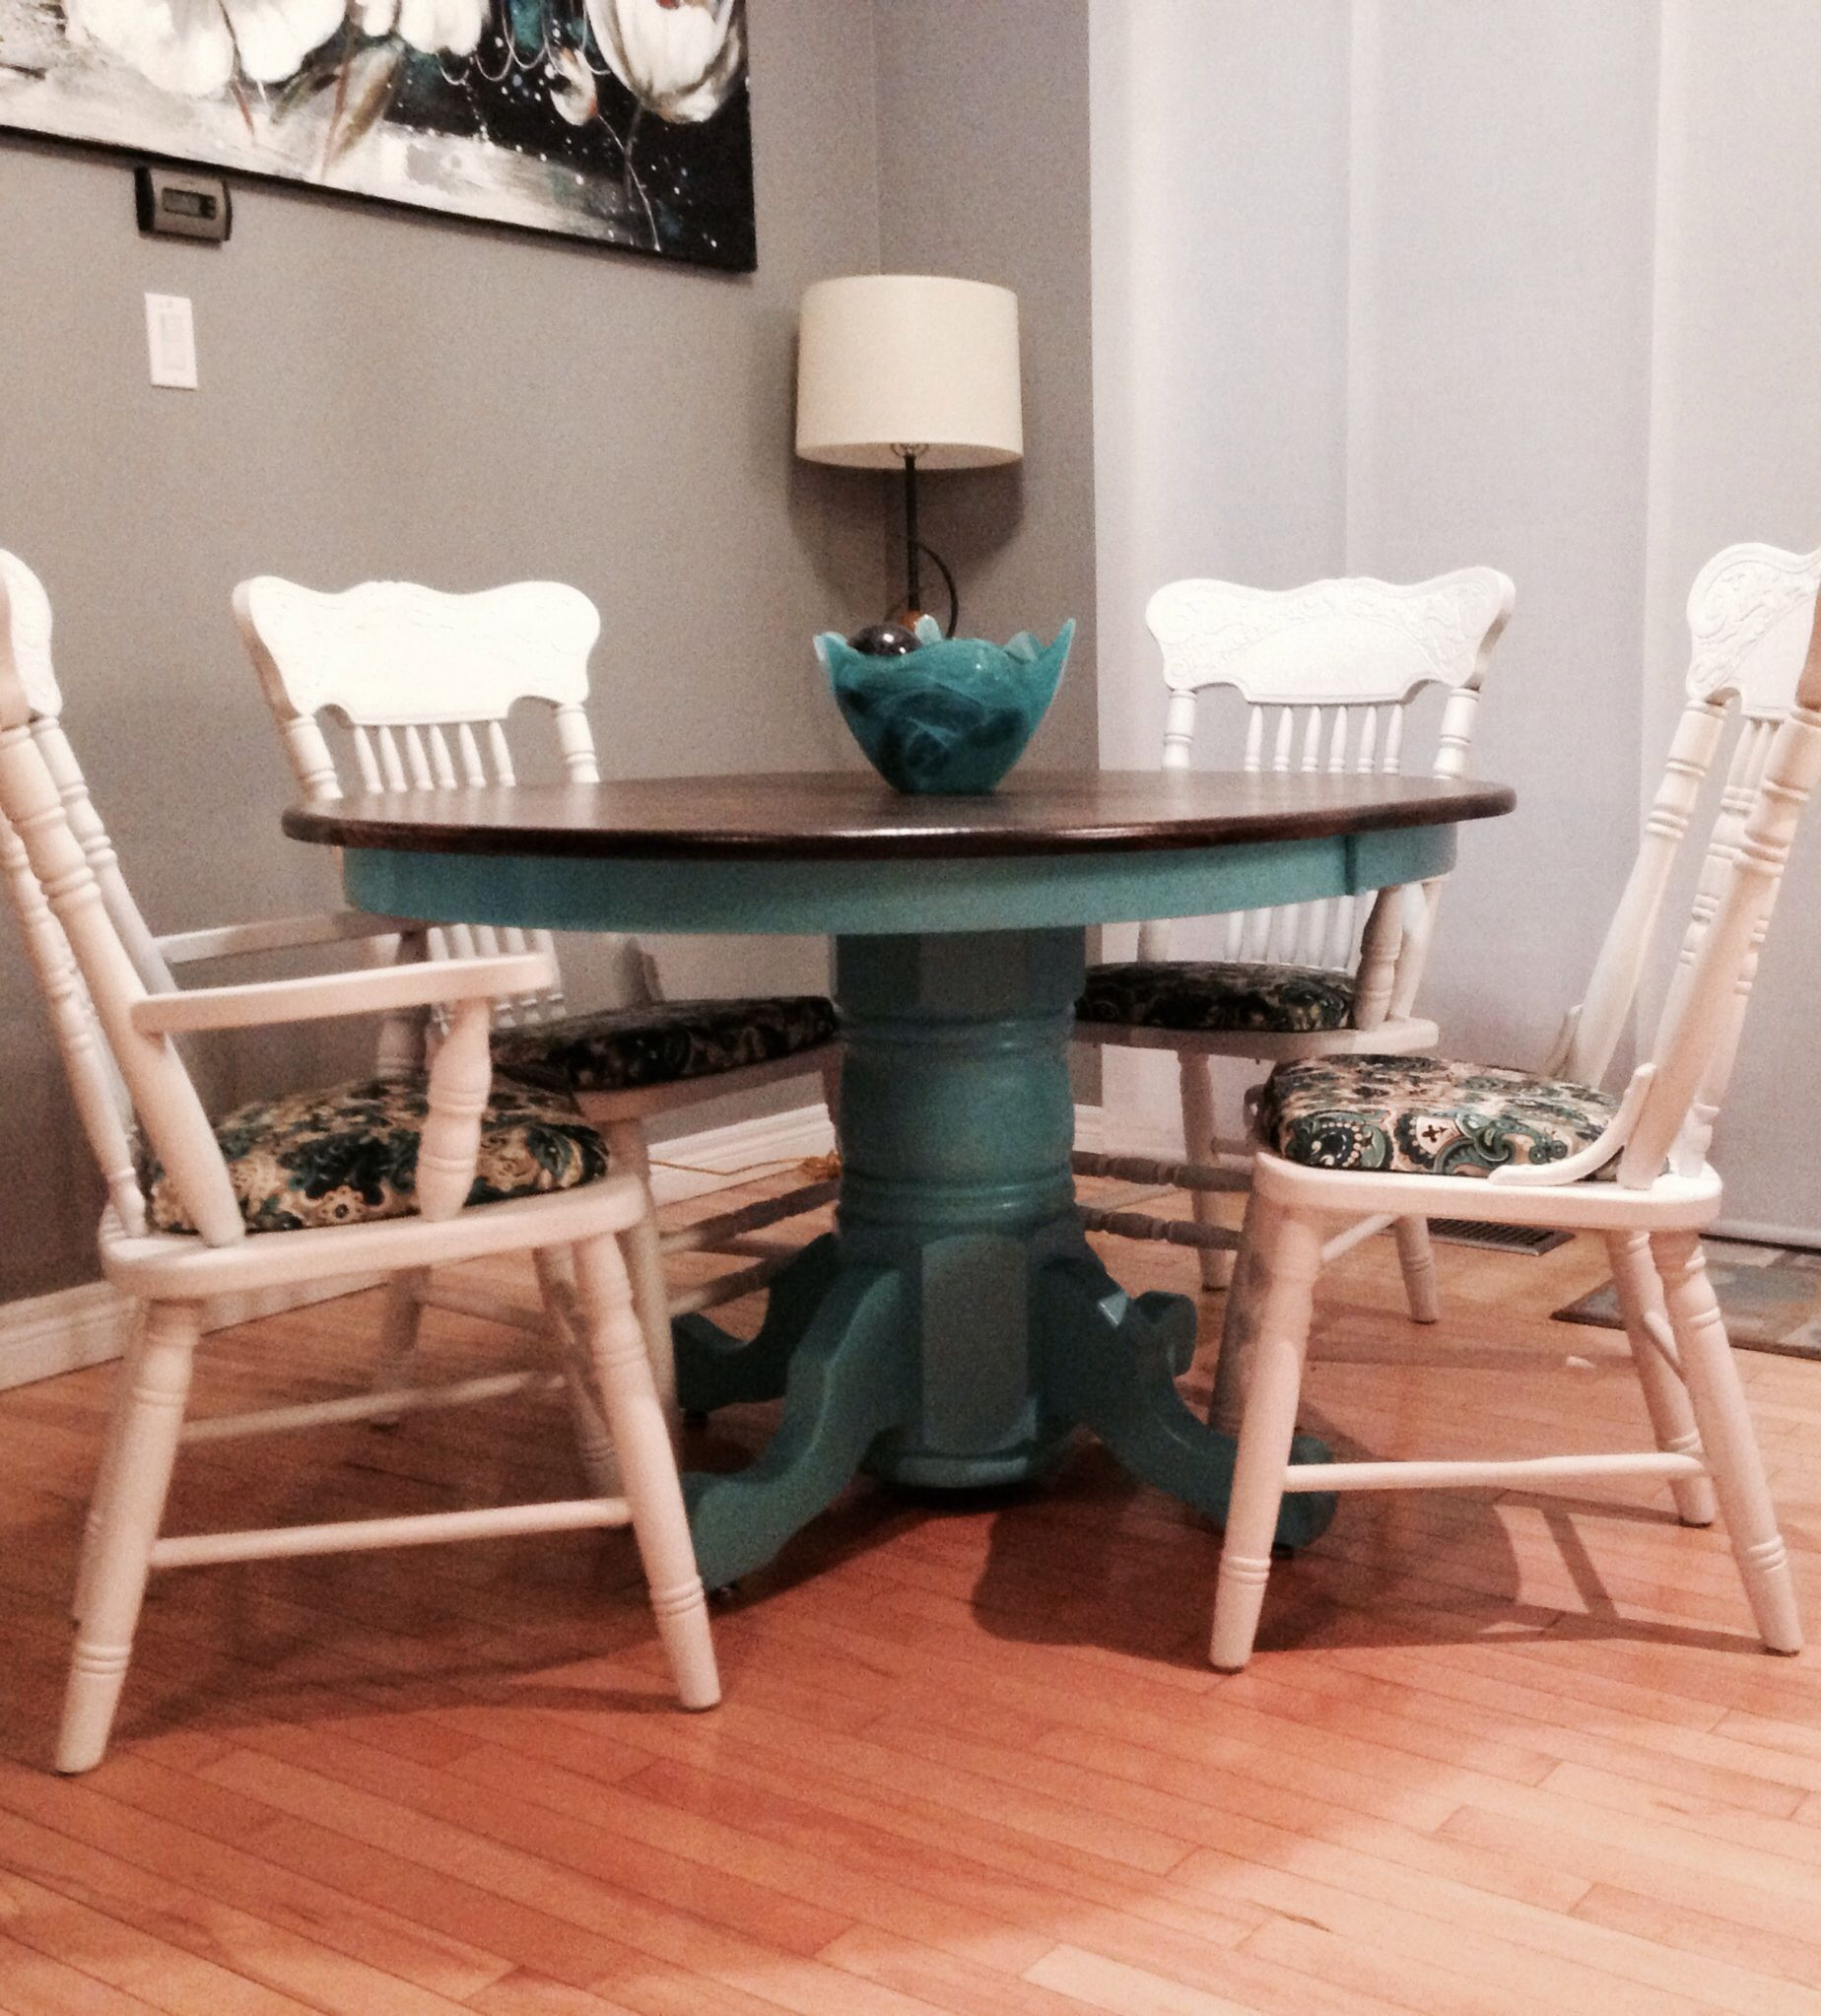 Refurbished Oak Kitchen Table With Teal And Fresh White